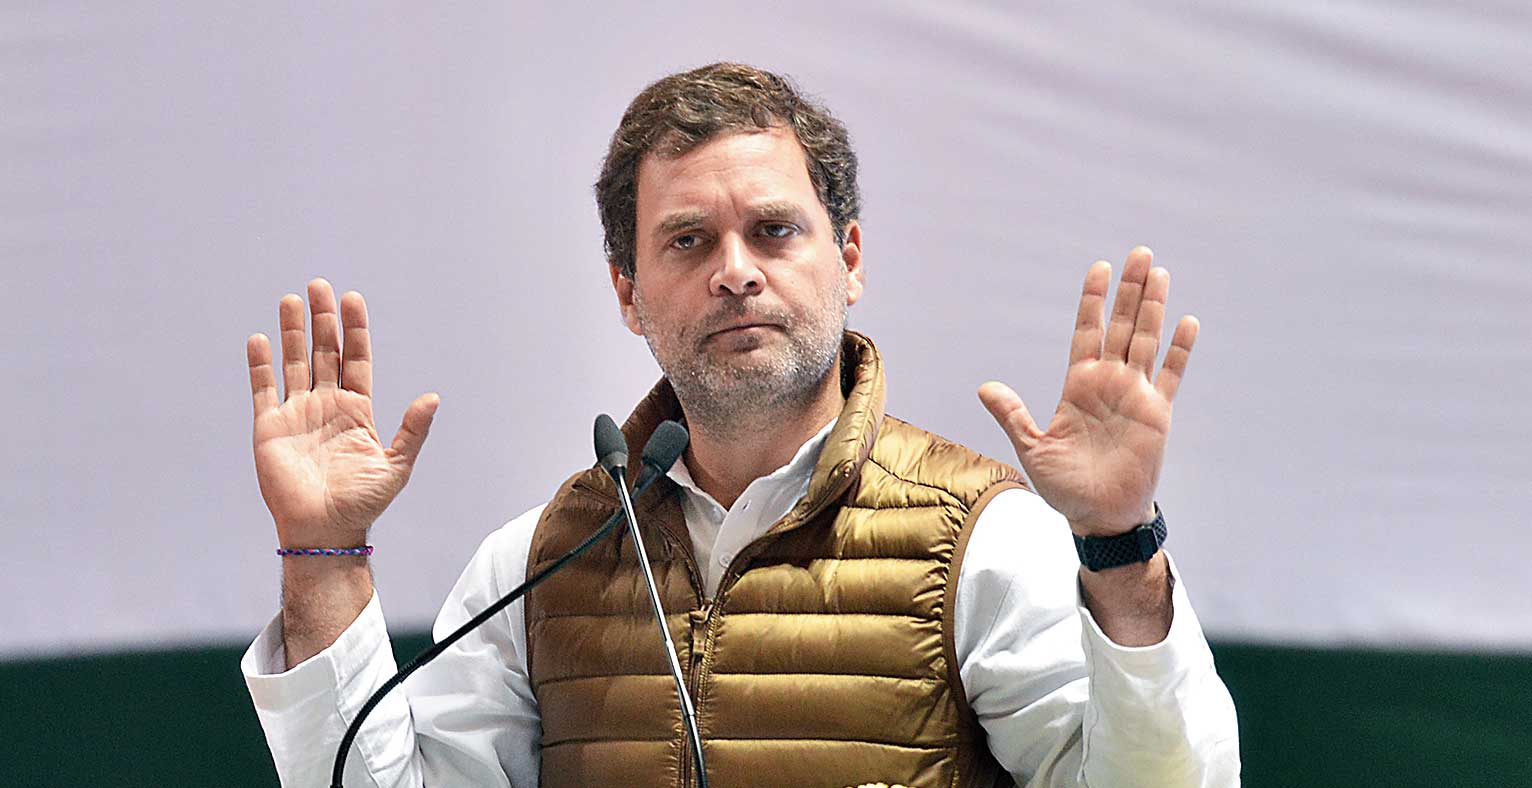 After dig at Modi's probity, Rahul guns for strongman image